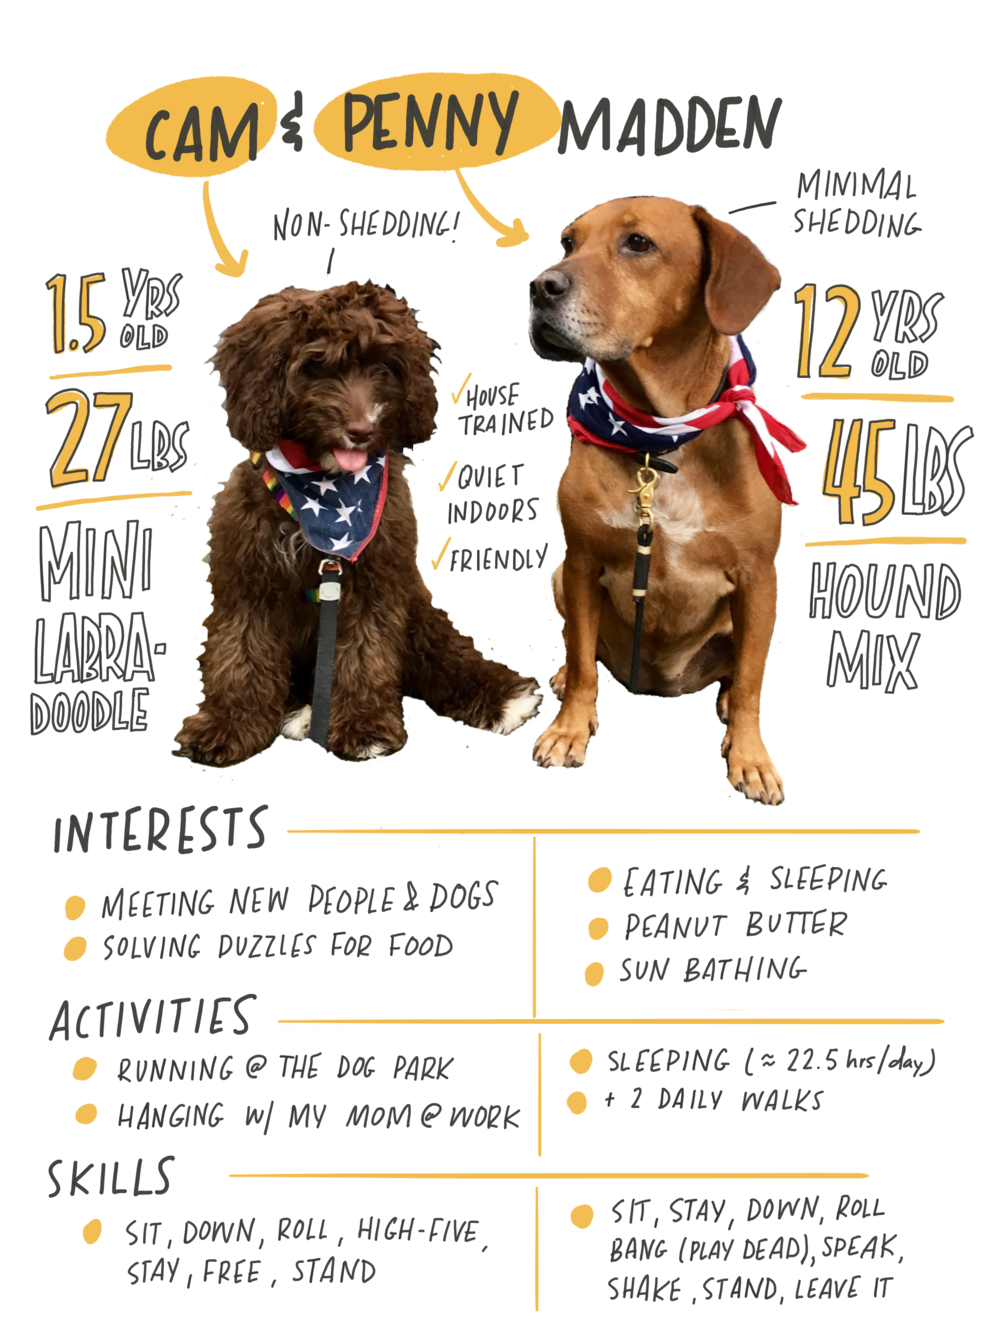 A visual resume, for pets!